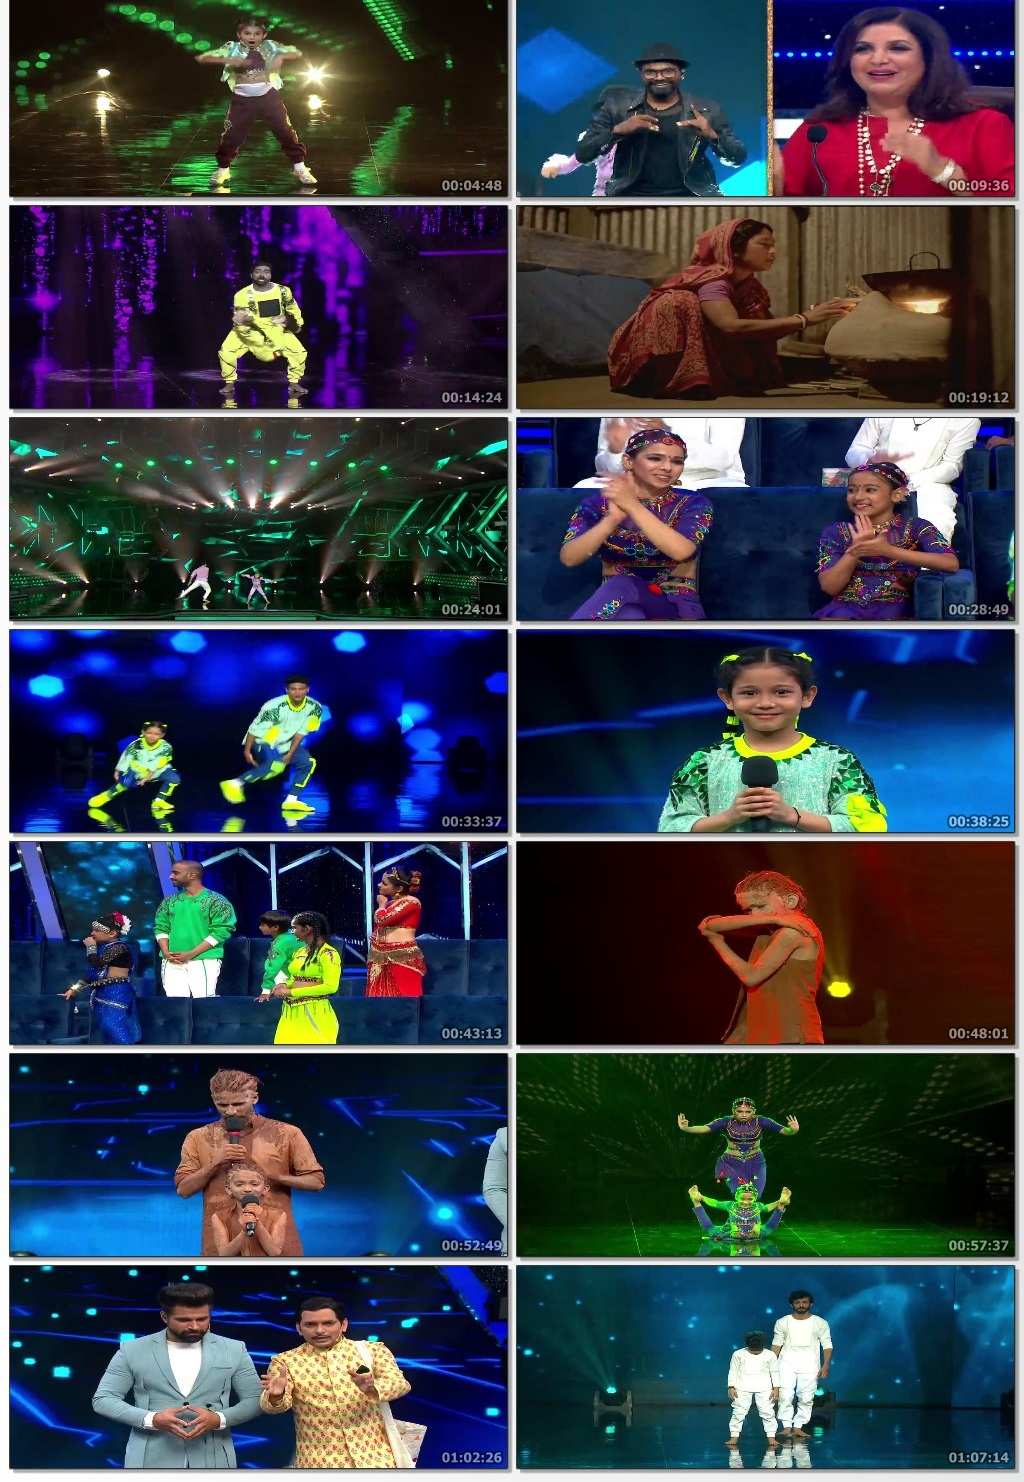 Super-Dancer-Chapter-4-2-May-2021-www-1kmovies-cyou-Hindi-720p-HDRip-500-MB-mkv-thumbs